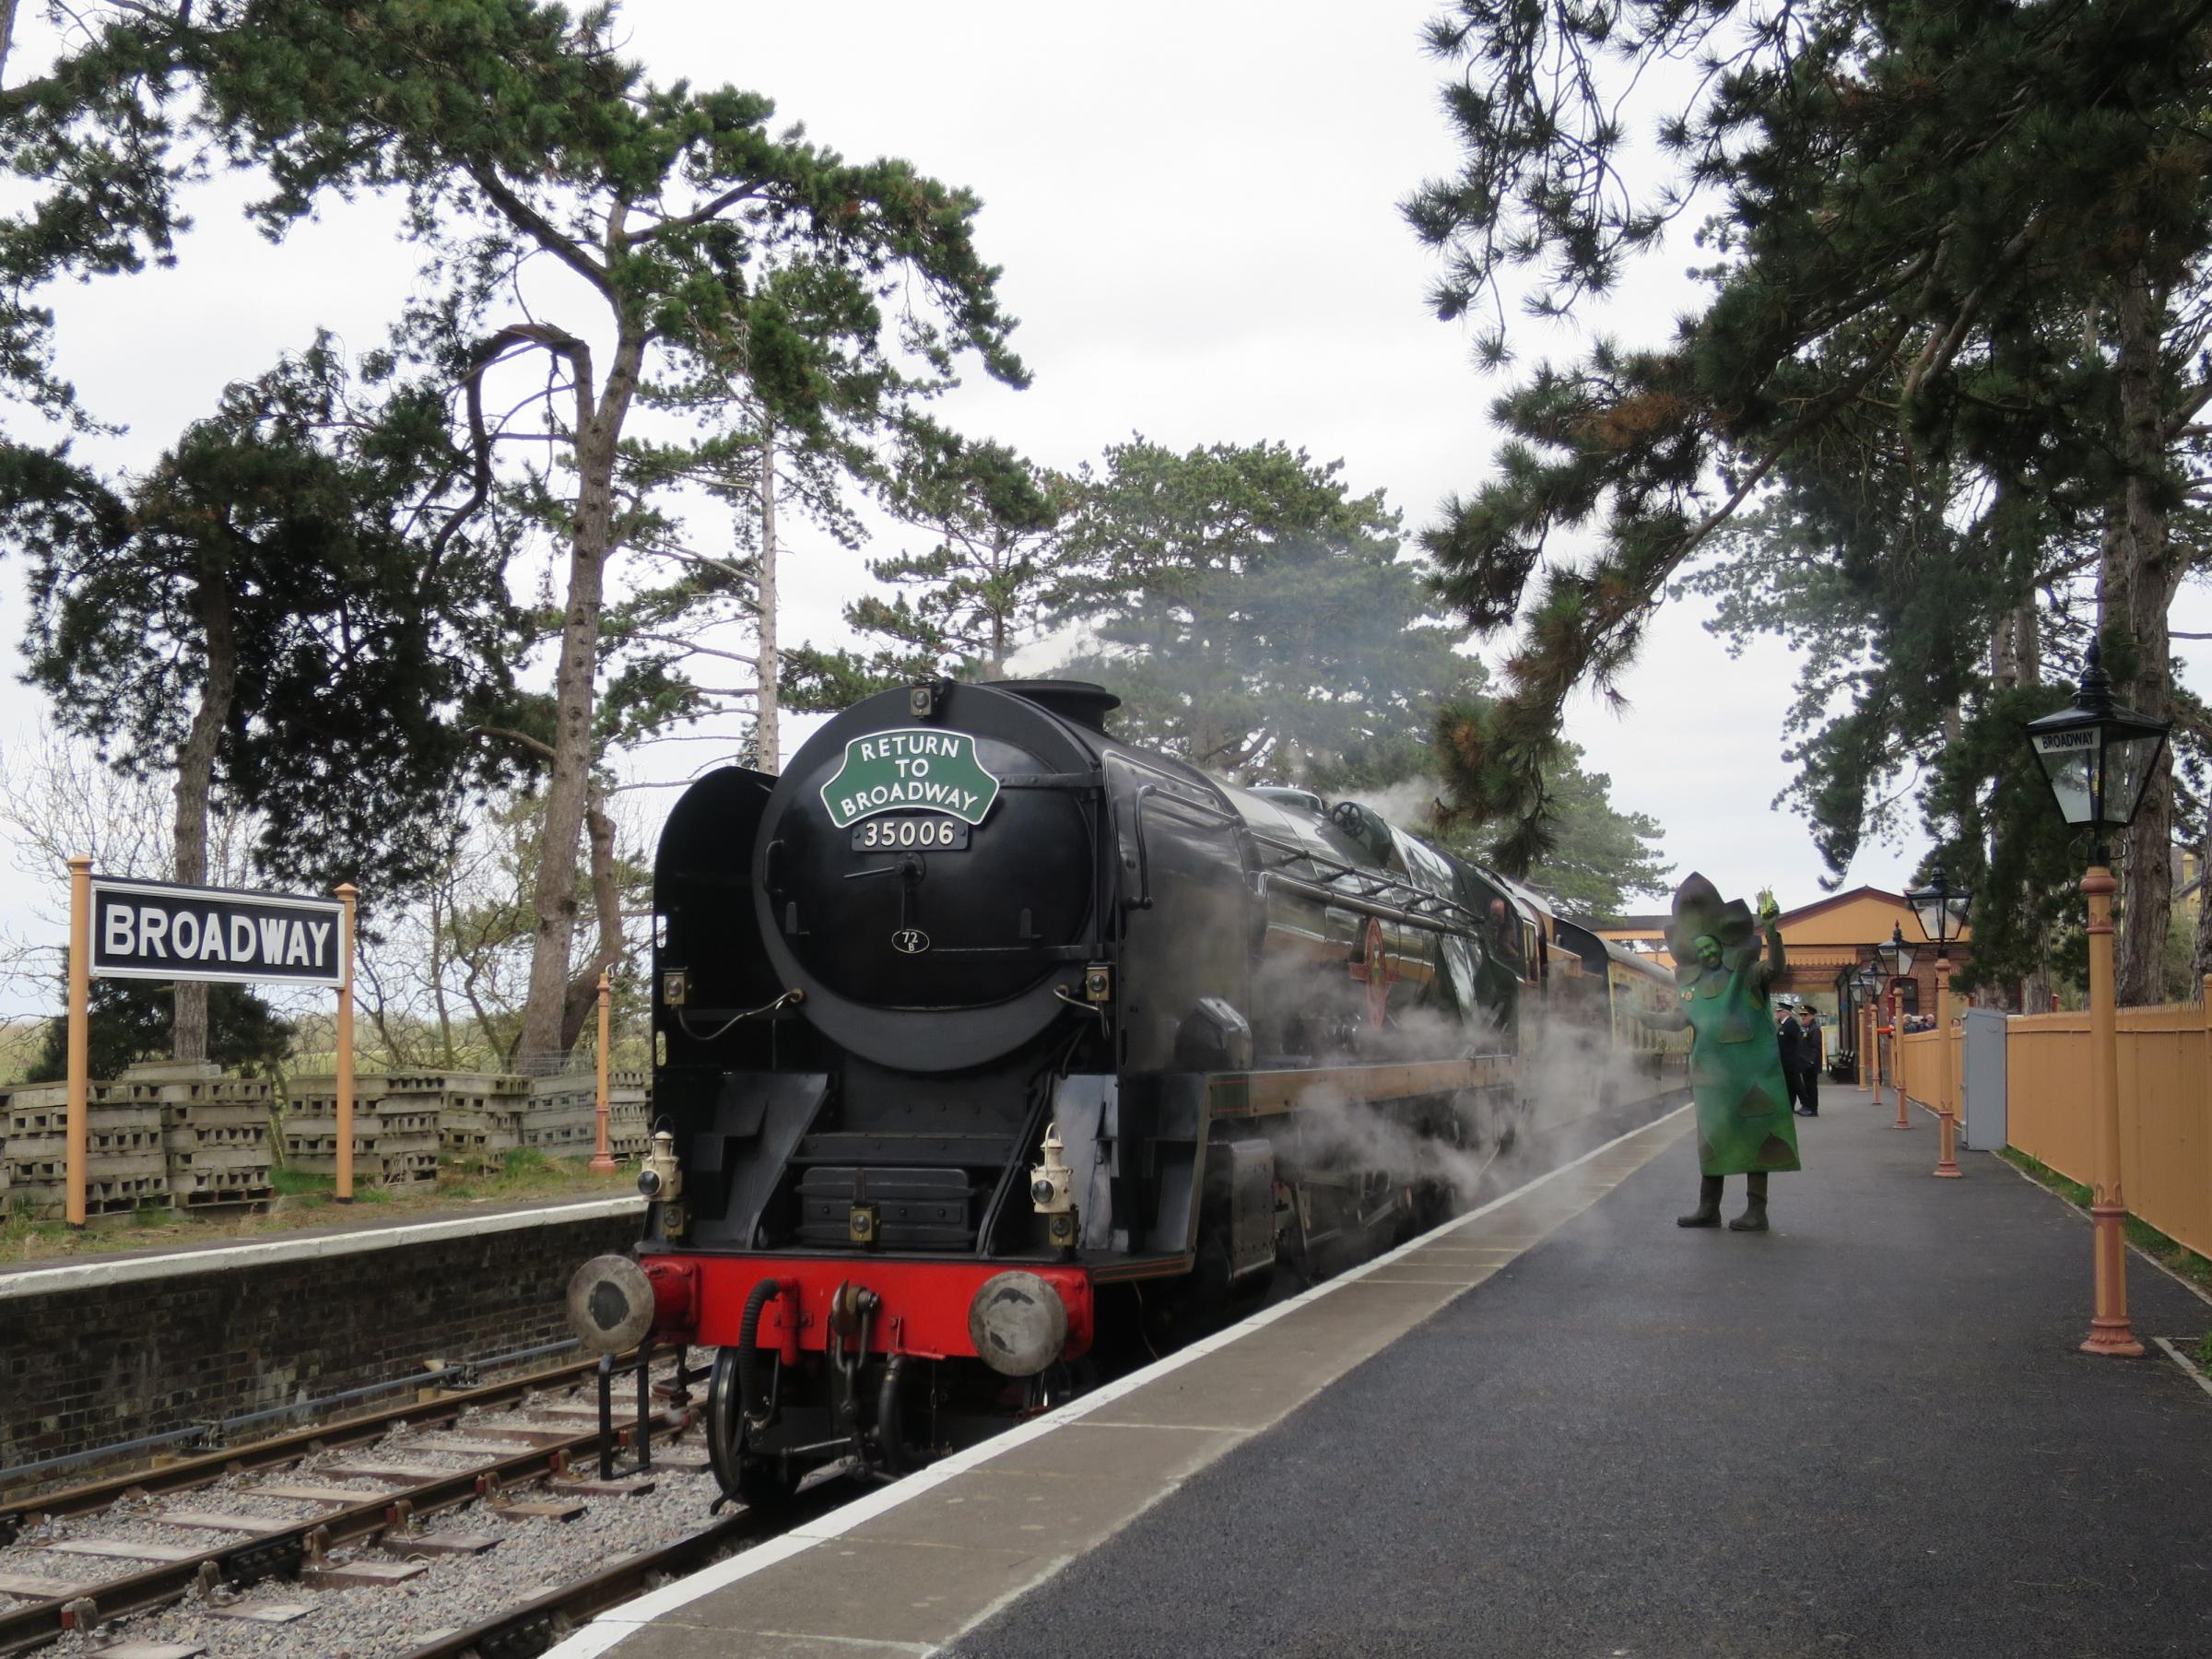 EXPRESS: The Asparagus Express will be steaming along from Broadway to Cheltenham Racecourse on National Asparagus Day. Picture: Angela Taylor.